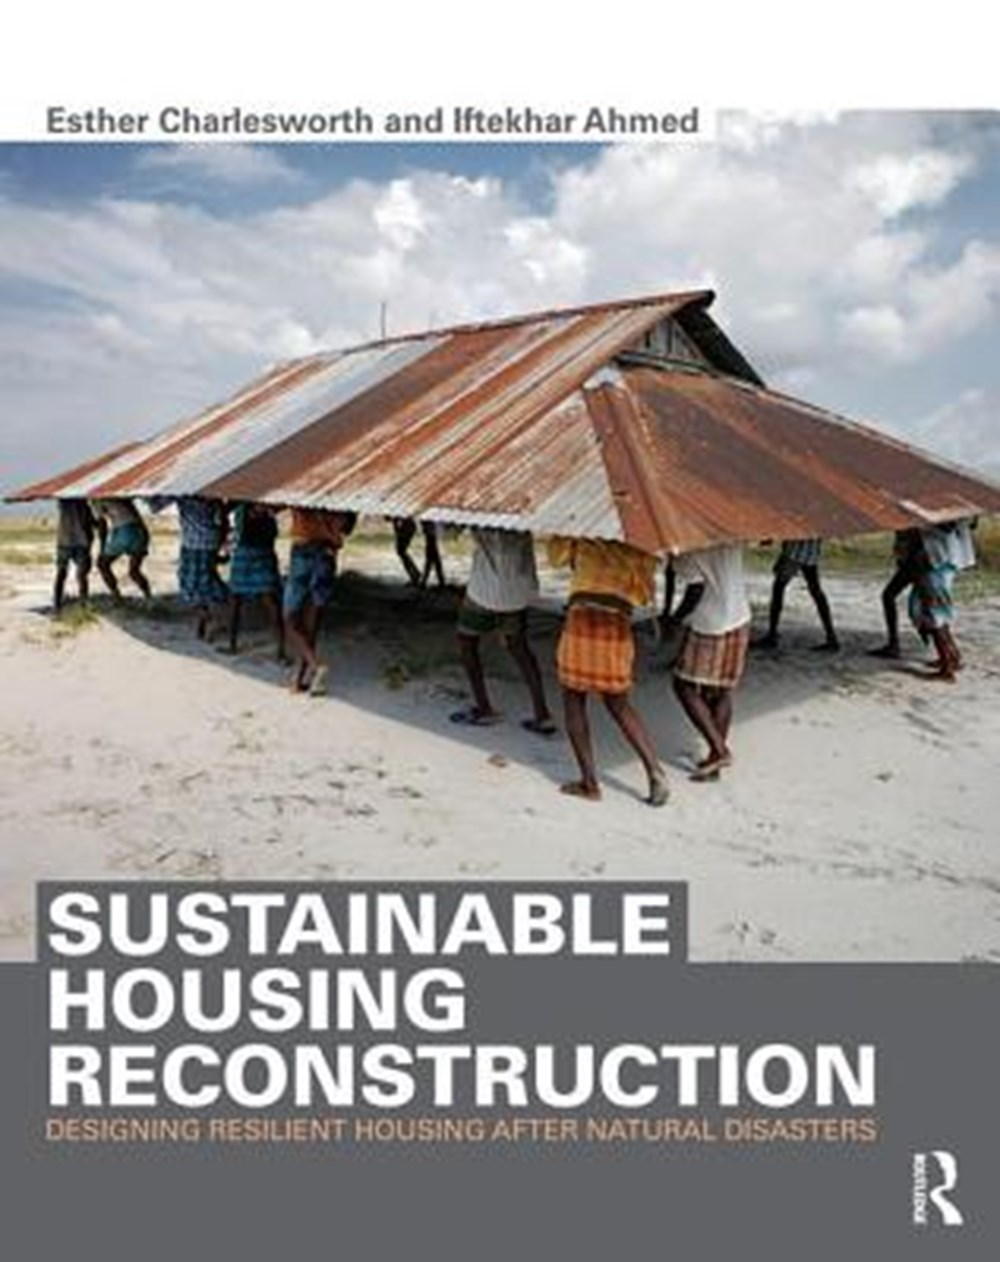 Sustainable Housing Reconstruction Designing Resilient Housing After Natural Disasters